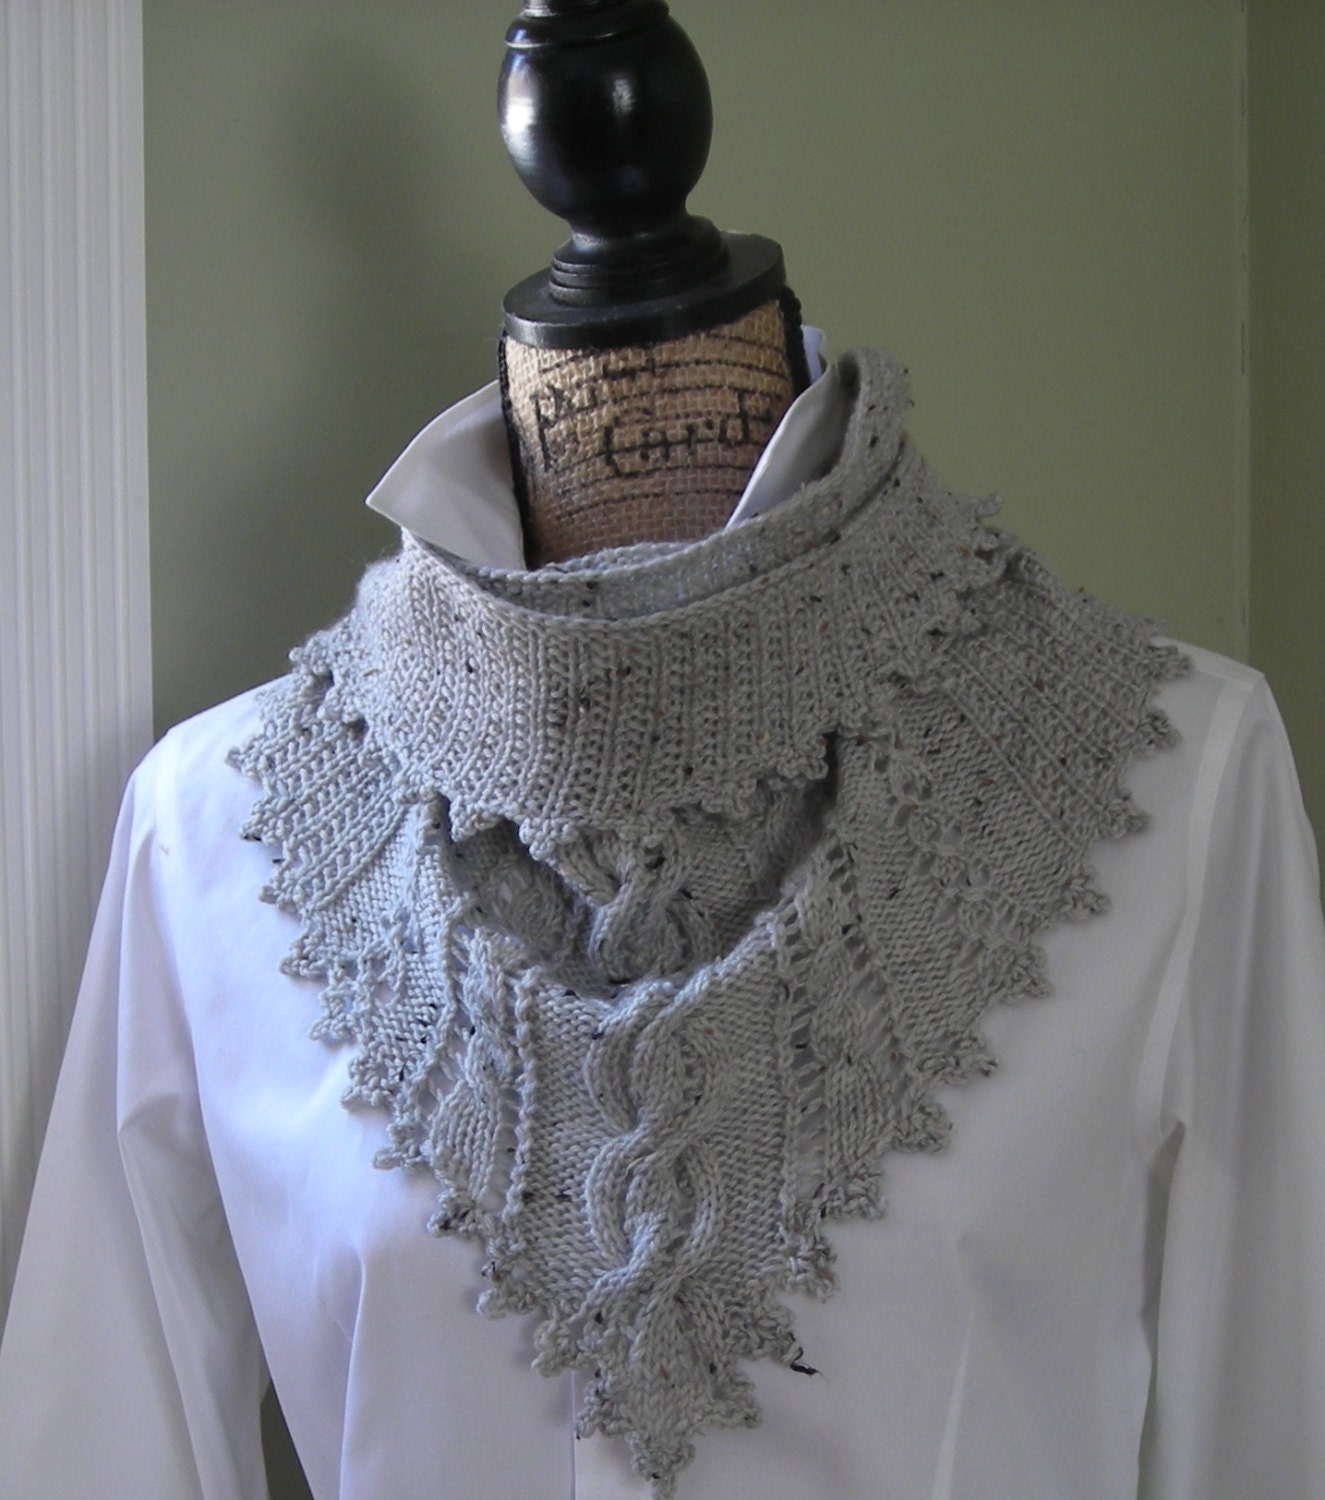 Knitting pattern - Clover Lace Cabled Shawlette crochet trim - PDF ...